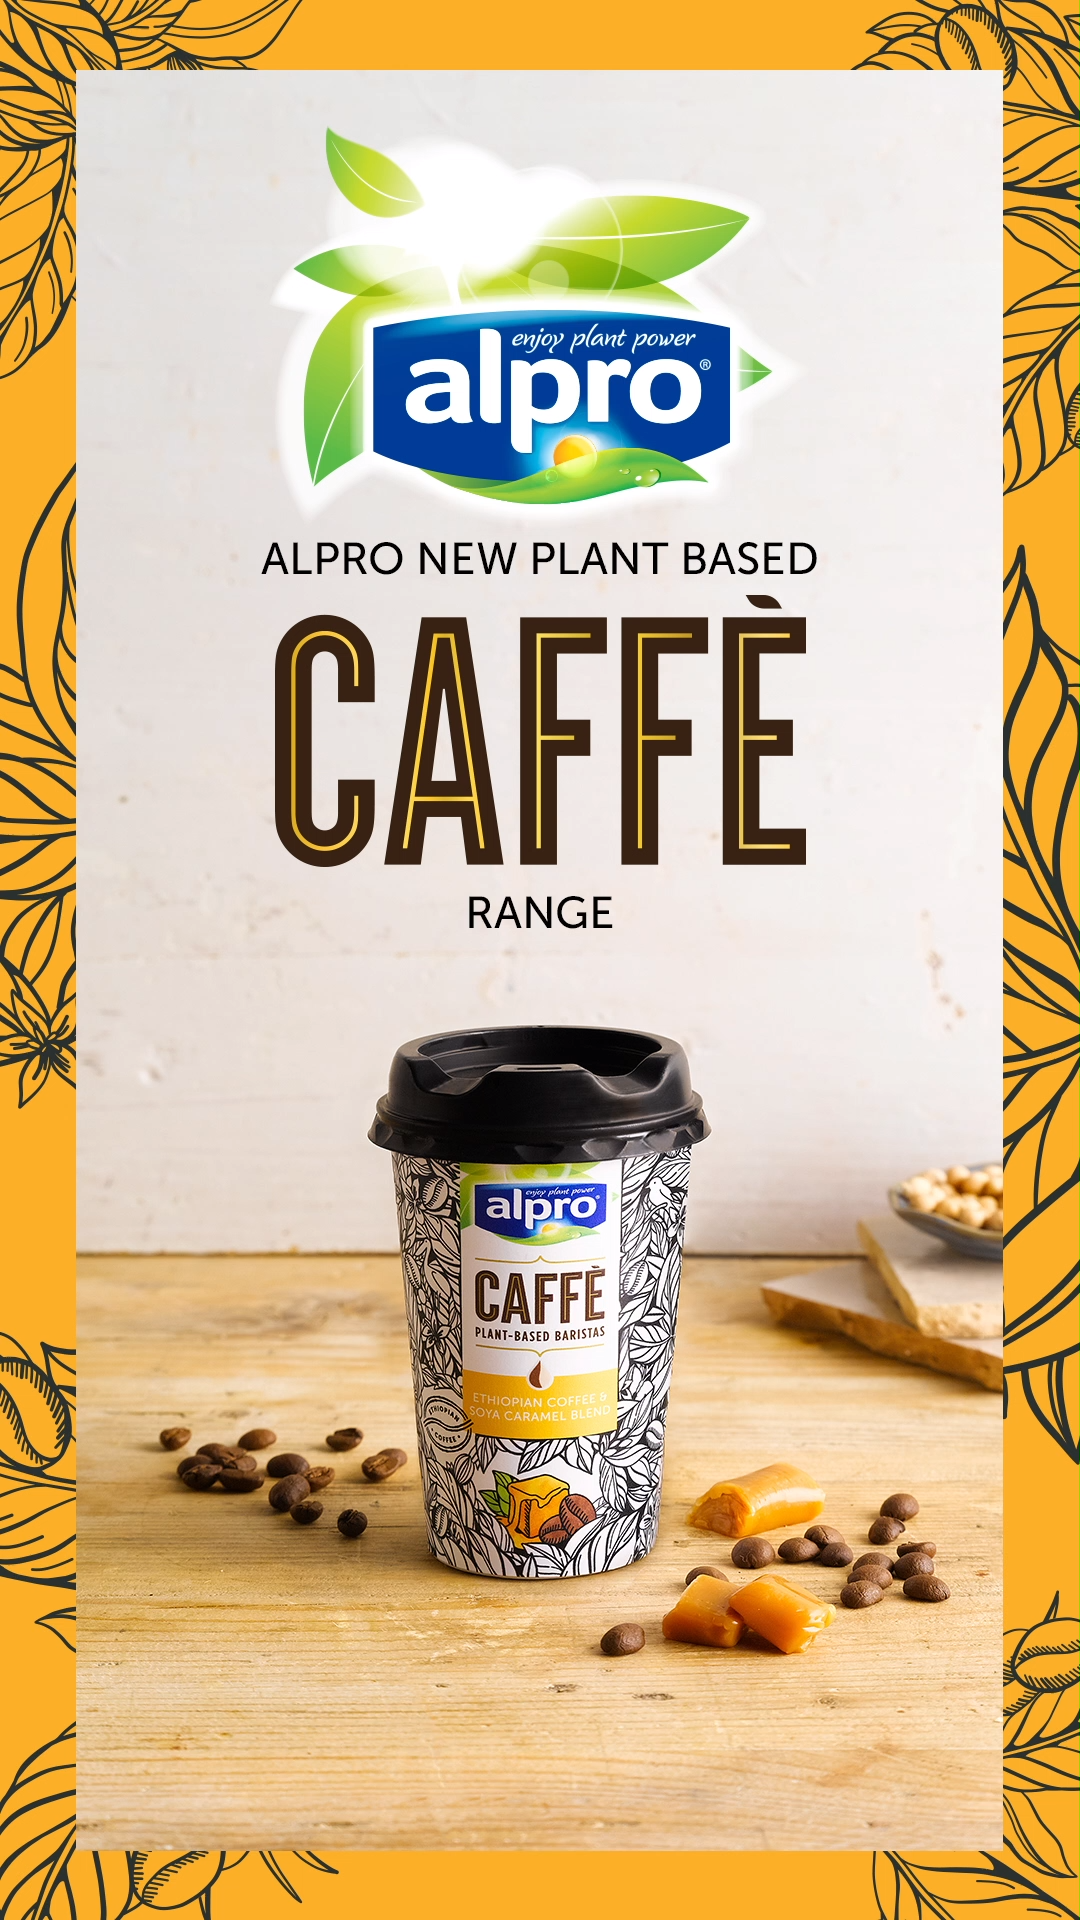 Alpro Caffè Range Hey You! Alpro has launched a delicious chilled coffee range perfect for on the go. Why not delve into Alpro Caffe, crafted to be a perfect blend. Ethiopian Coffee and Soya Caramel, Brazilian Coffee and Almond or Peruvian Coffee with Coconut. Less than 100 calories and full of plant-based goodness.